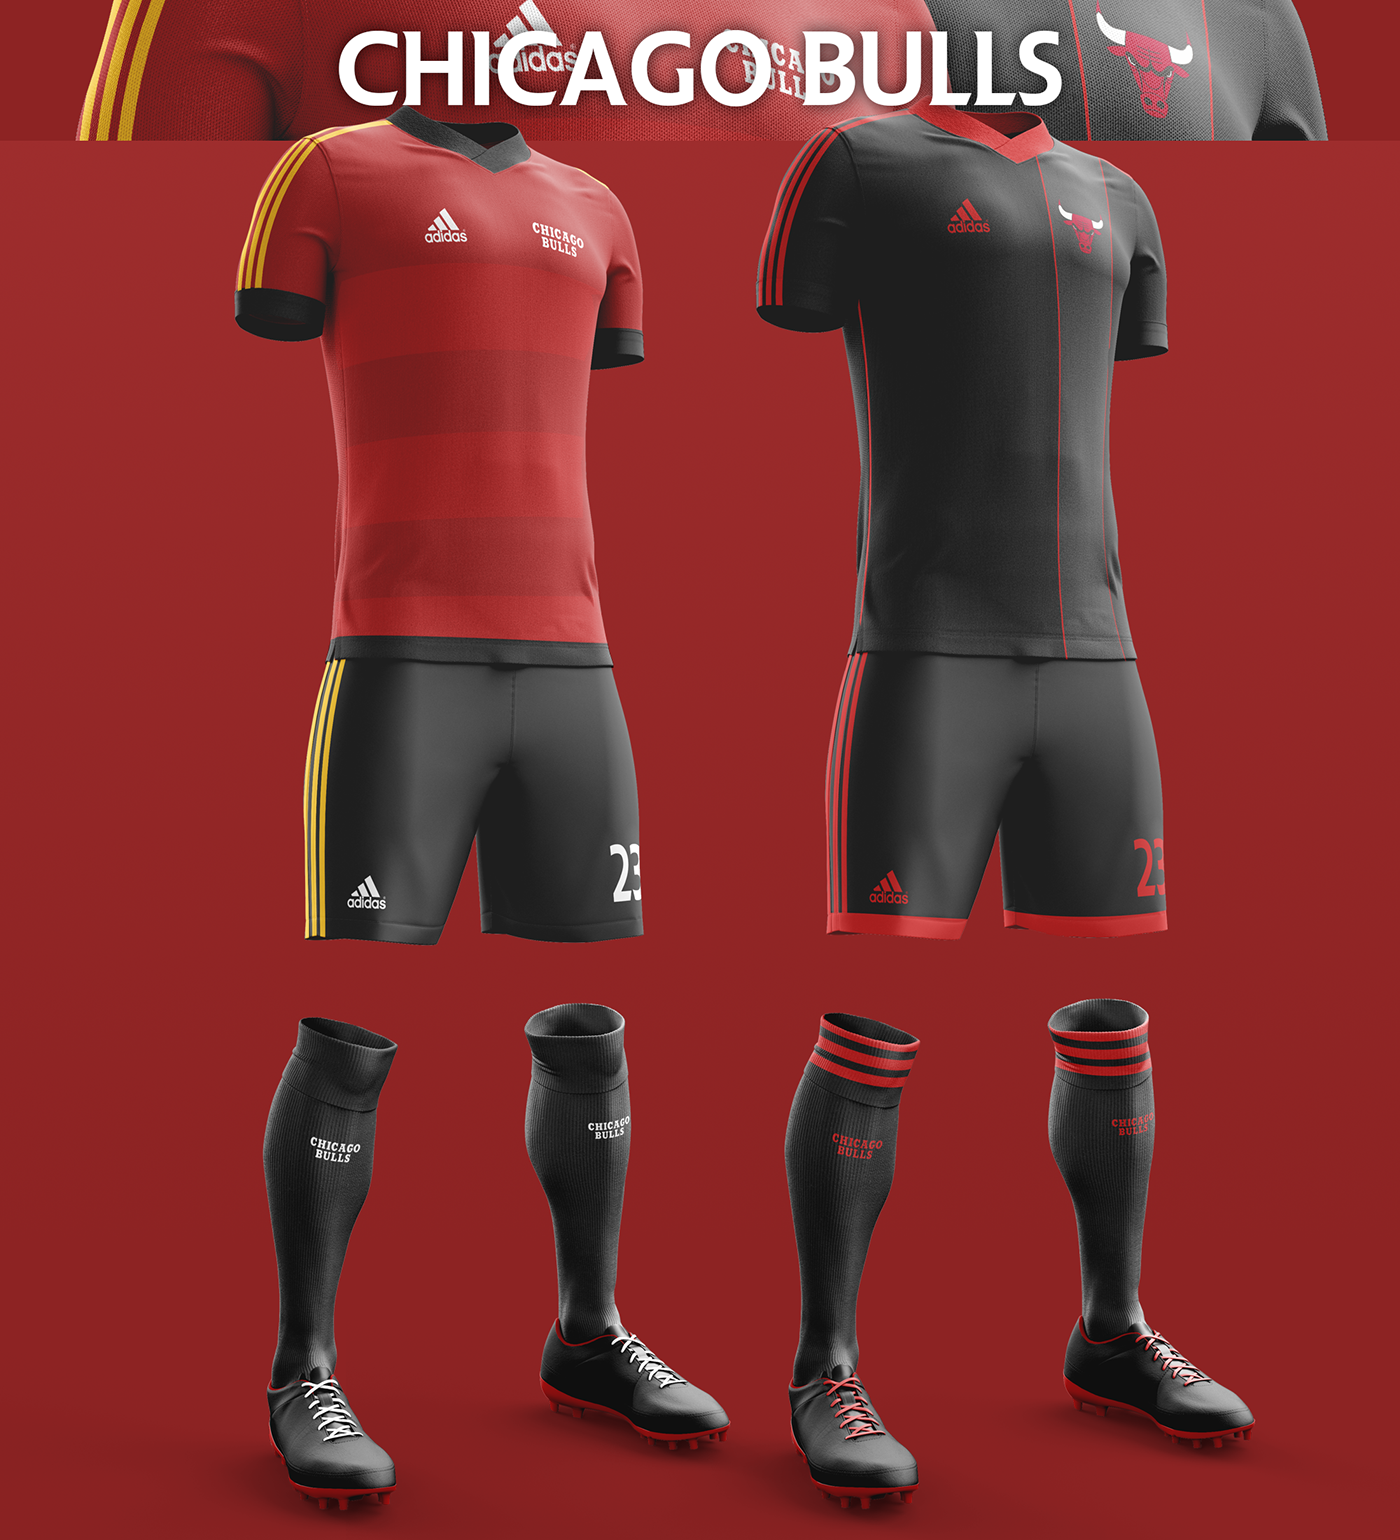 These NBA Football Kit Designs Are Incredibly Cool - VICE Sports c05c6f5f25bc5